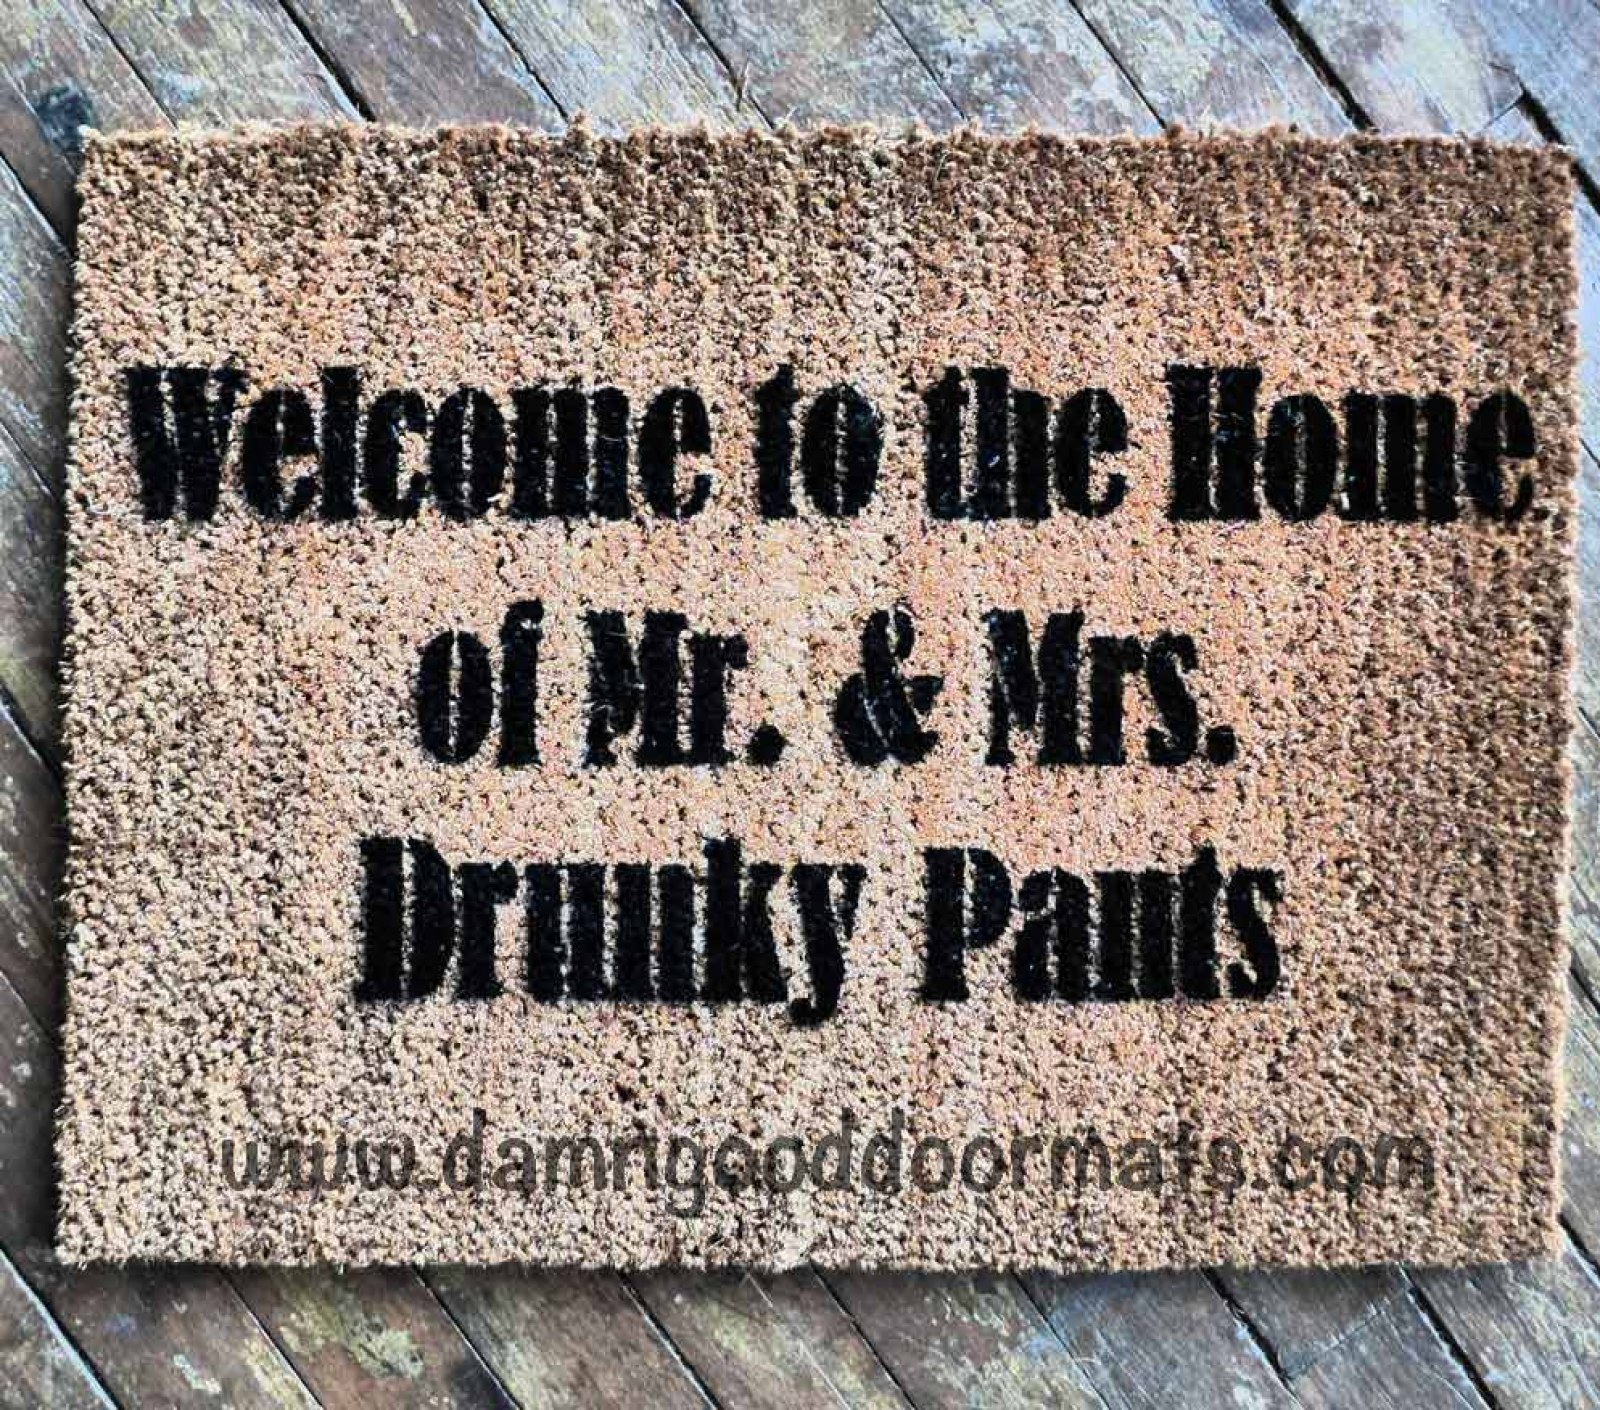 Lovely Welcome To The Home Of Mr. U0026 Mrs. Fancyy Pants Doormat